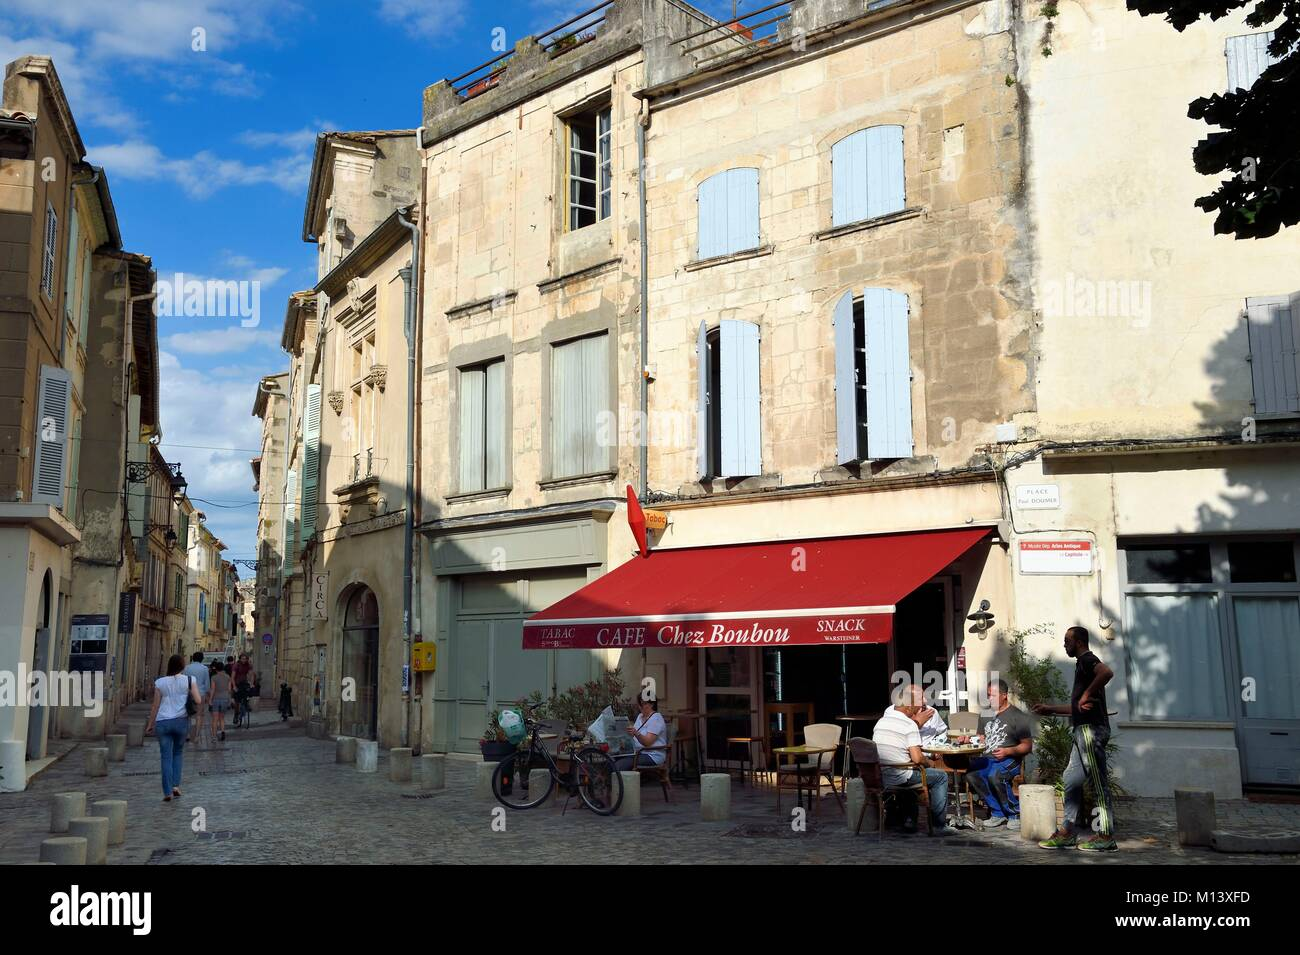 back street cafe in france stock photos back street cafe in france stock images alamy. Black Bedroom Furniture Sets. Home Design Ideas